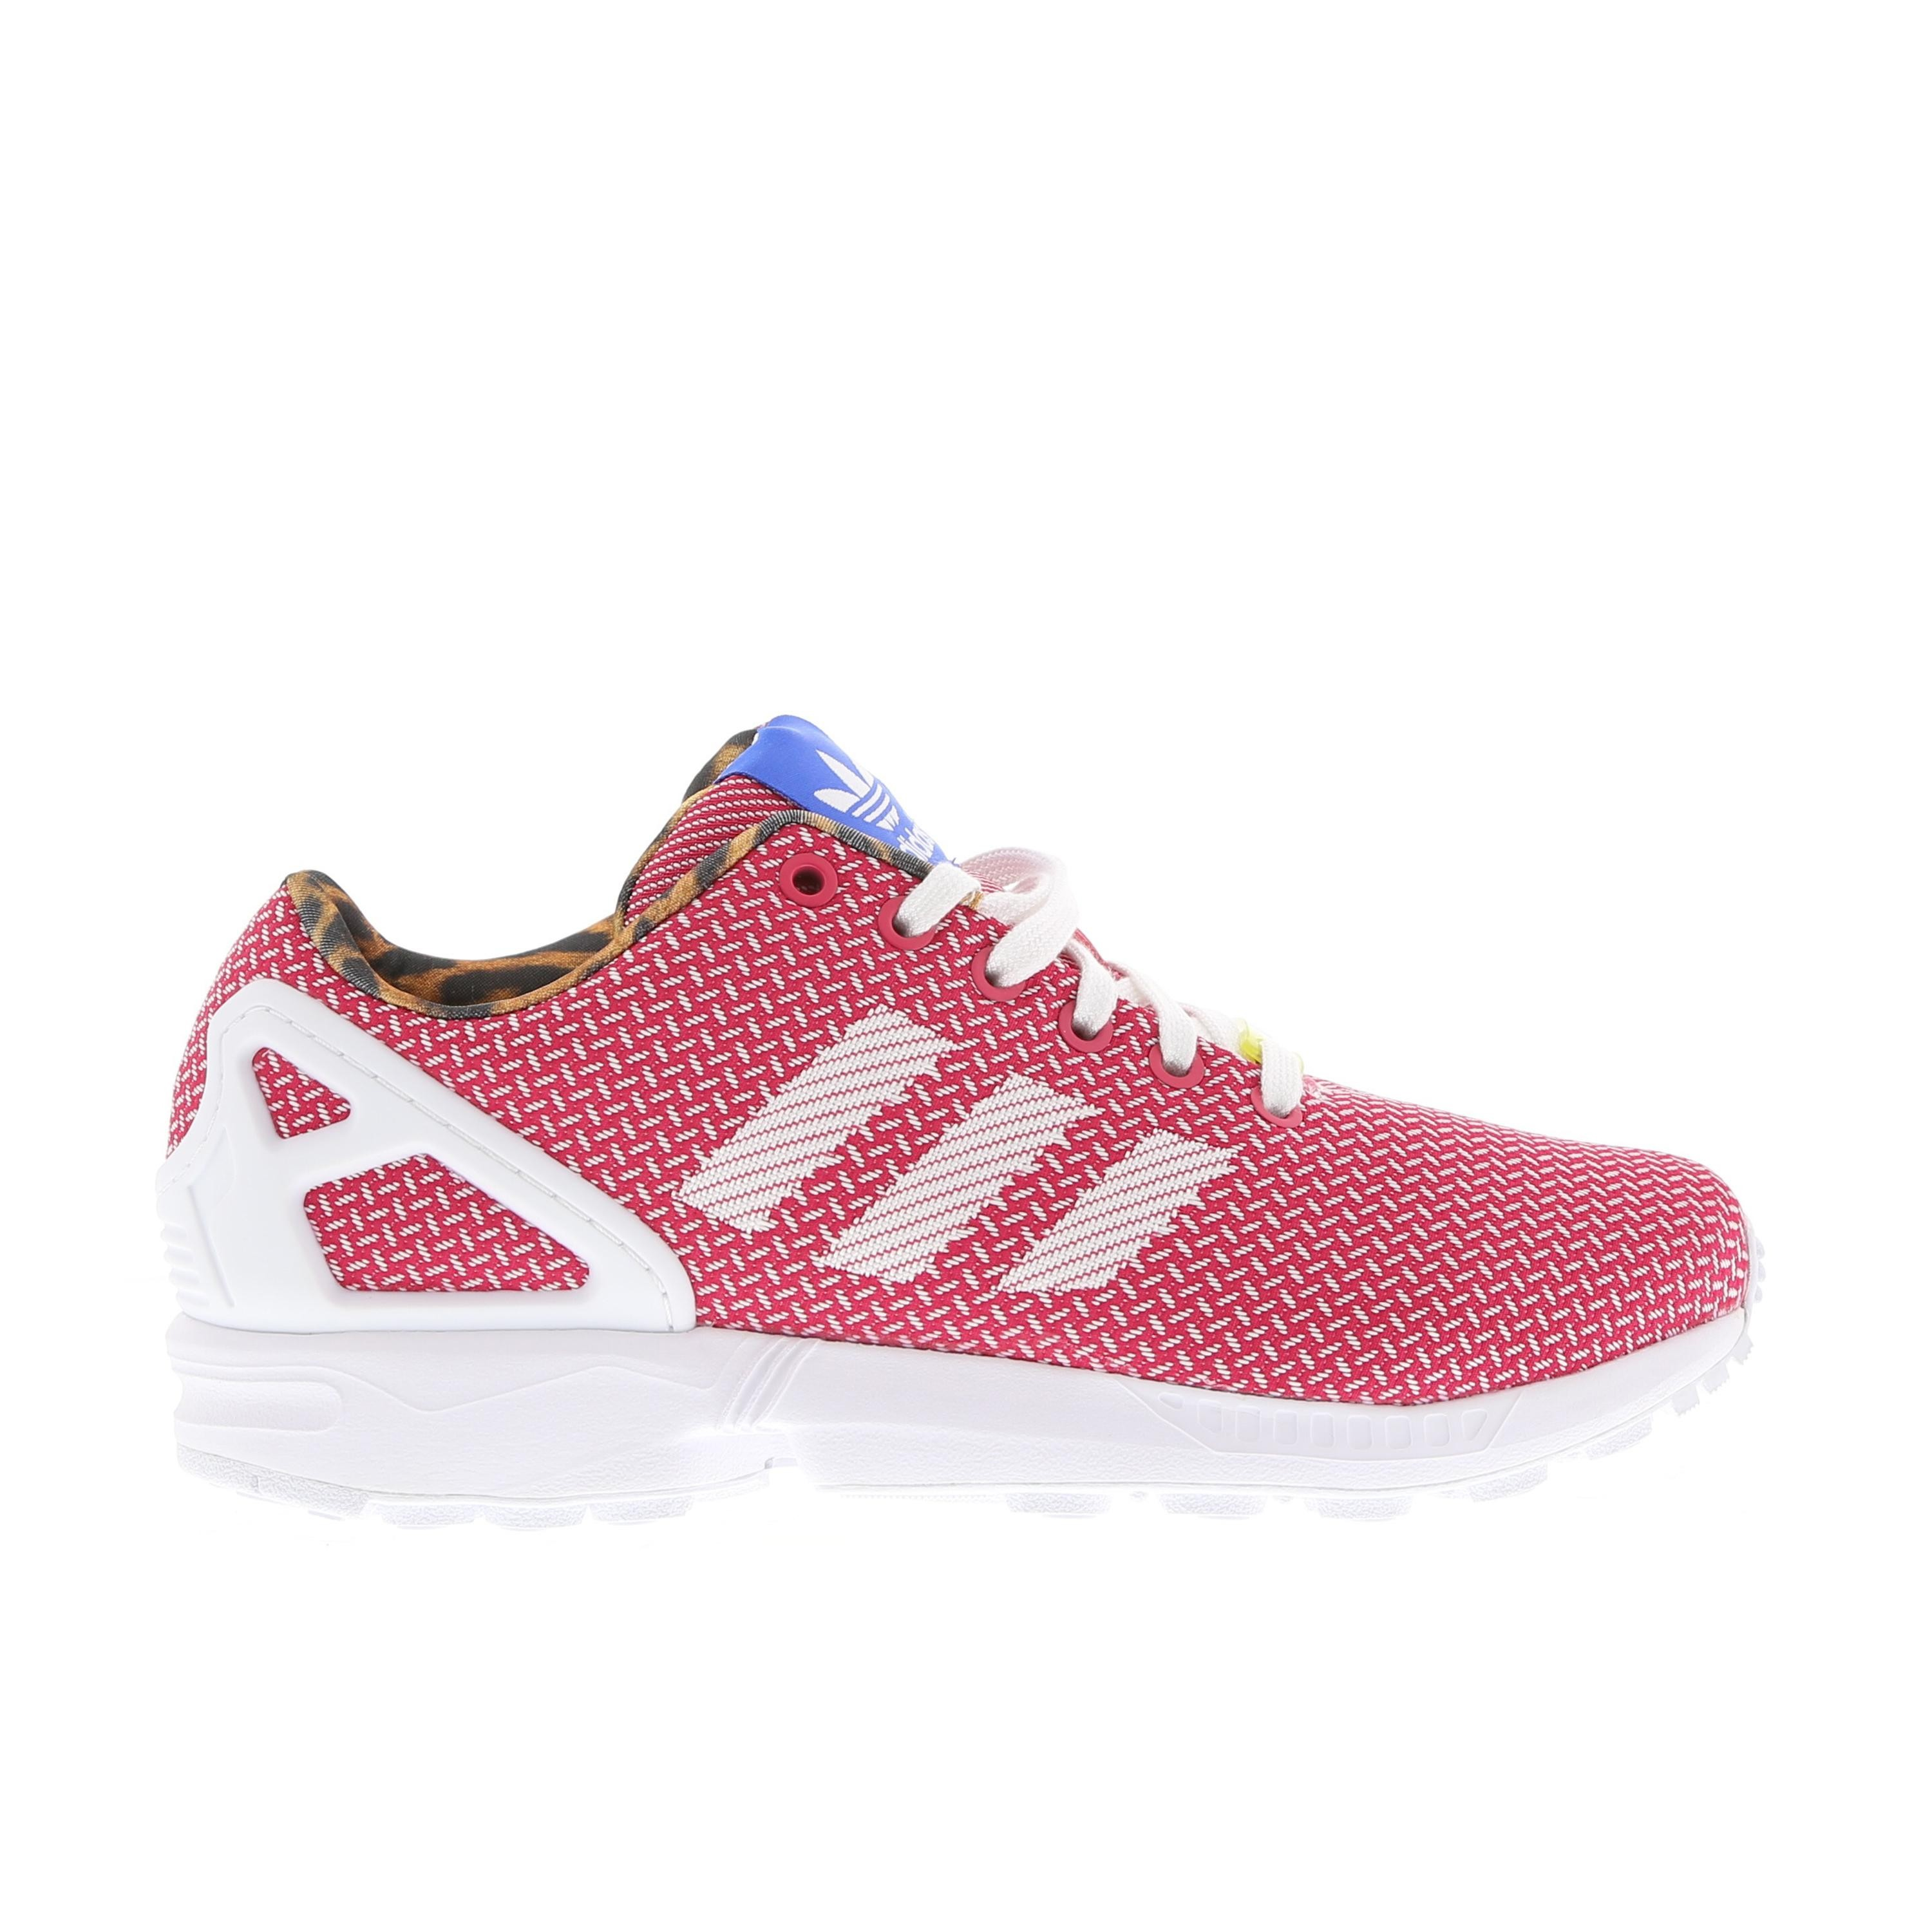 Adidas ZX Flux Weave Femme Sneakers Courir Blanche/Berry Vives/Satellite M21366